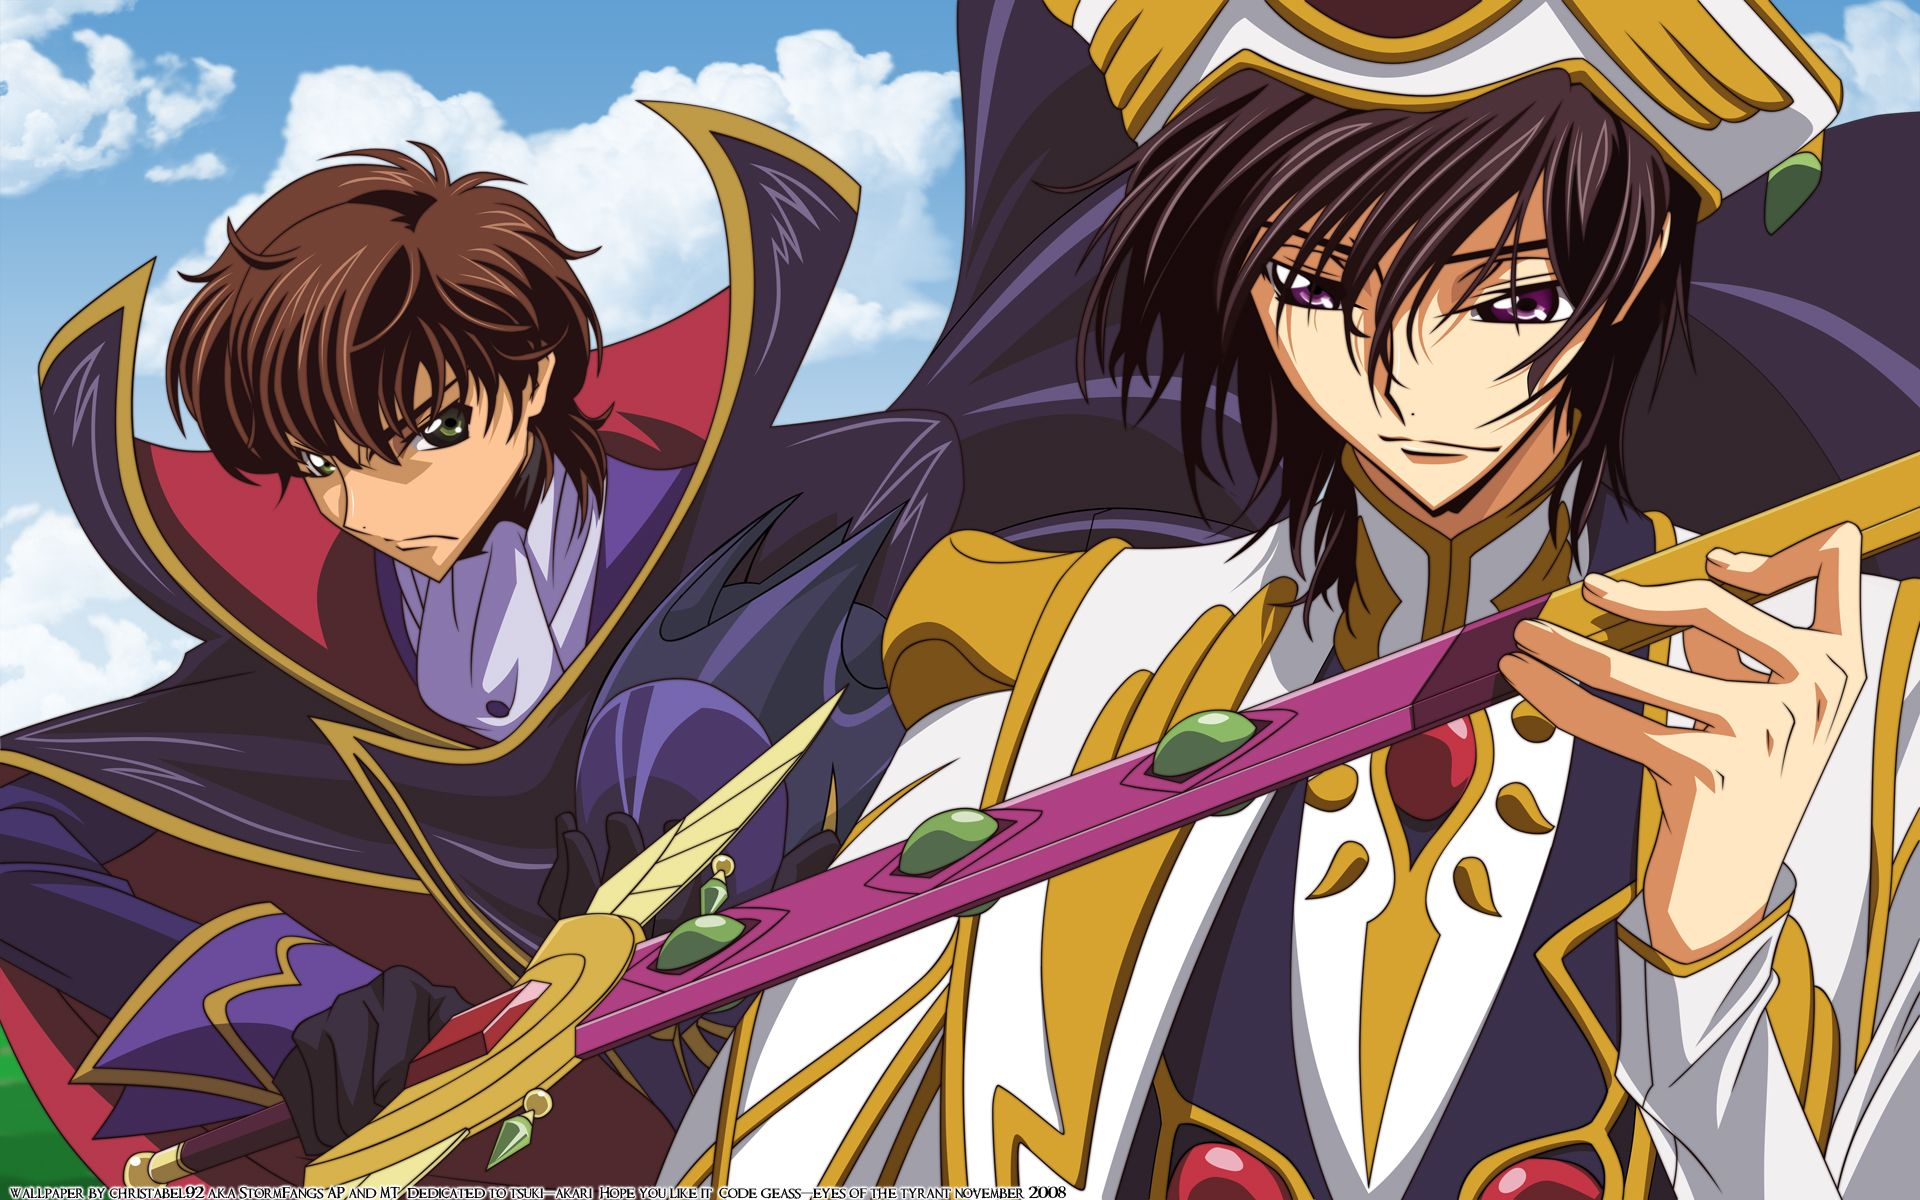 Konachan.com - 50055 code_geass kururugi_suzaku lelouch_lamperouge sword weapon